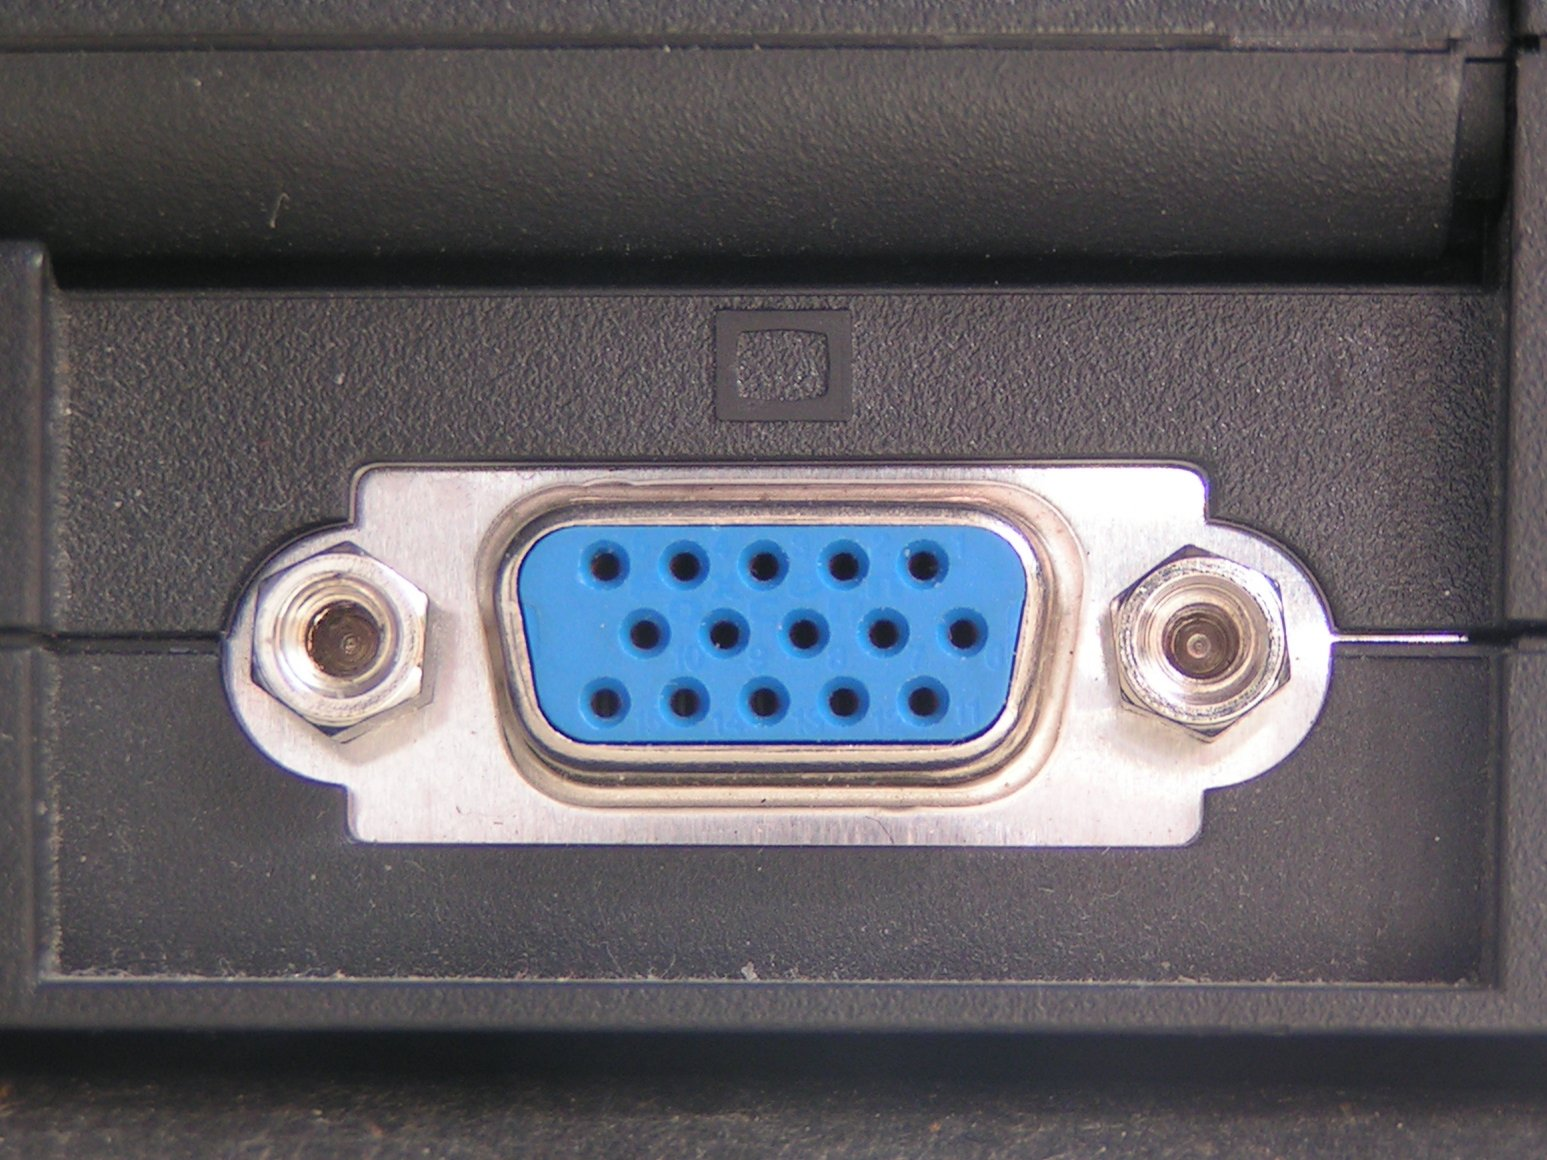 vga connector wikipedia 15-Pin VGA Cable Diagram